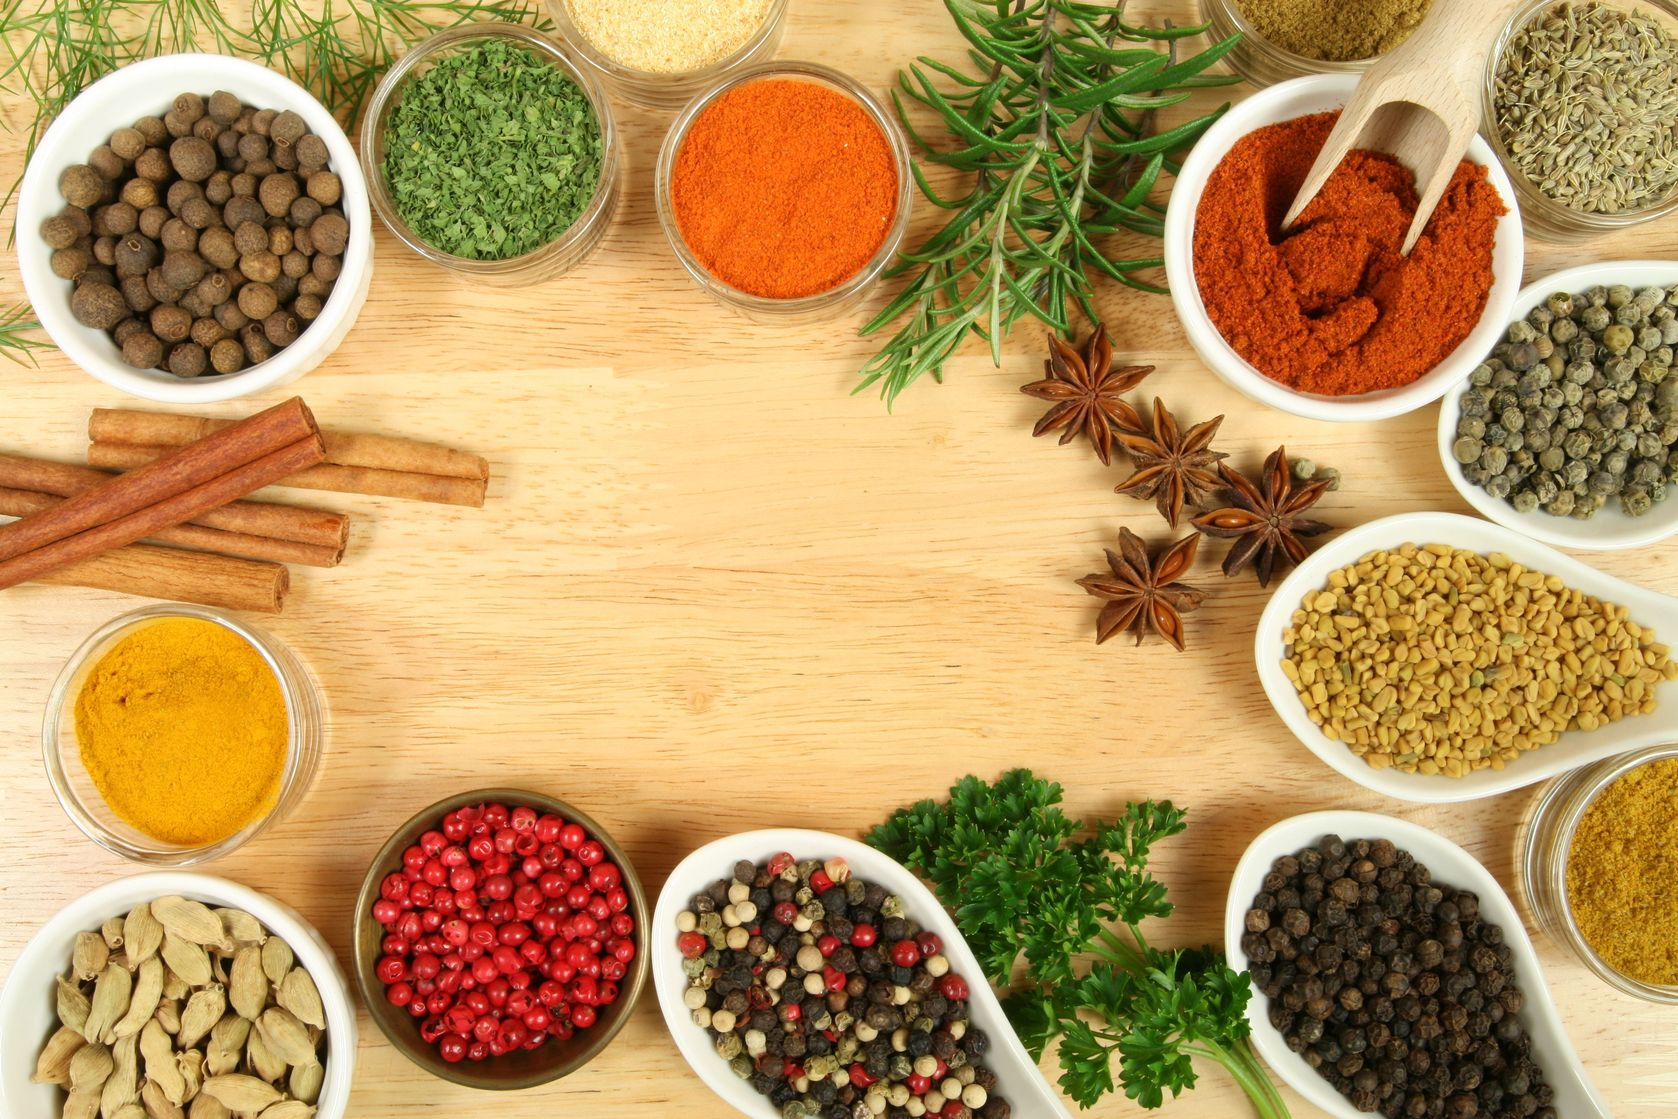 If you want to amp up your cooking game, start incorporating more spices and unique flavors.